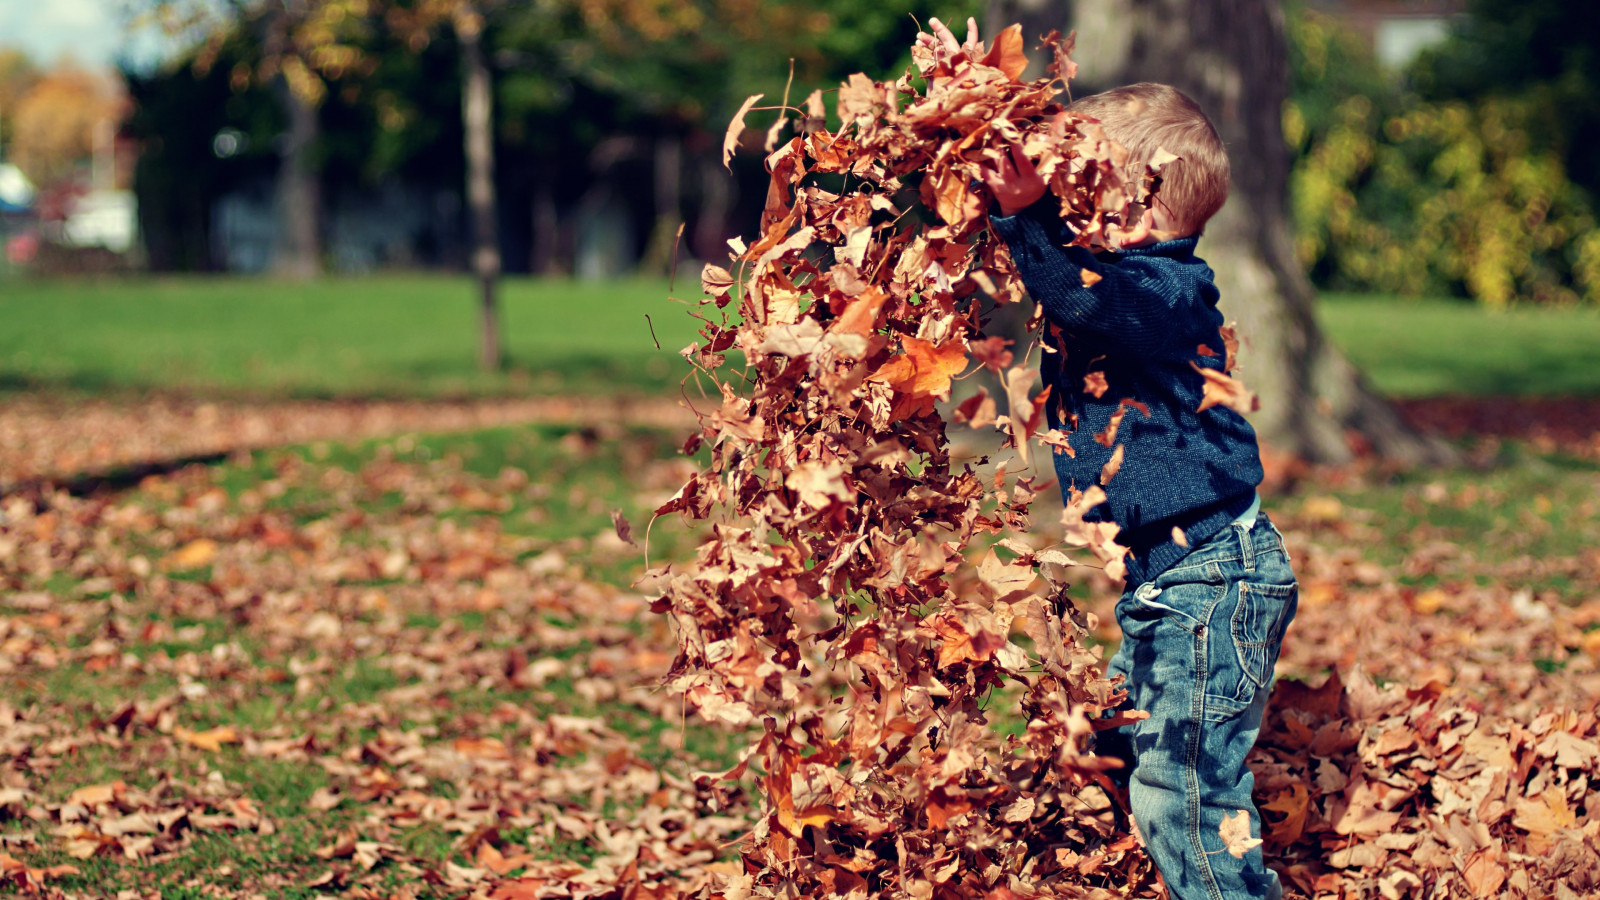 The child is playing with leaves wallpaper 1600x900